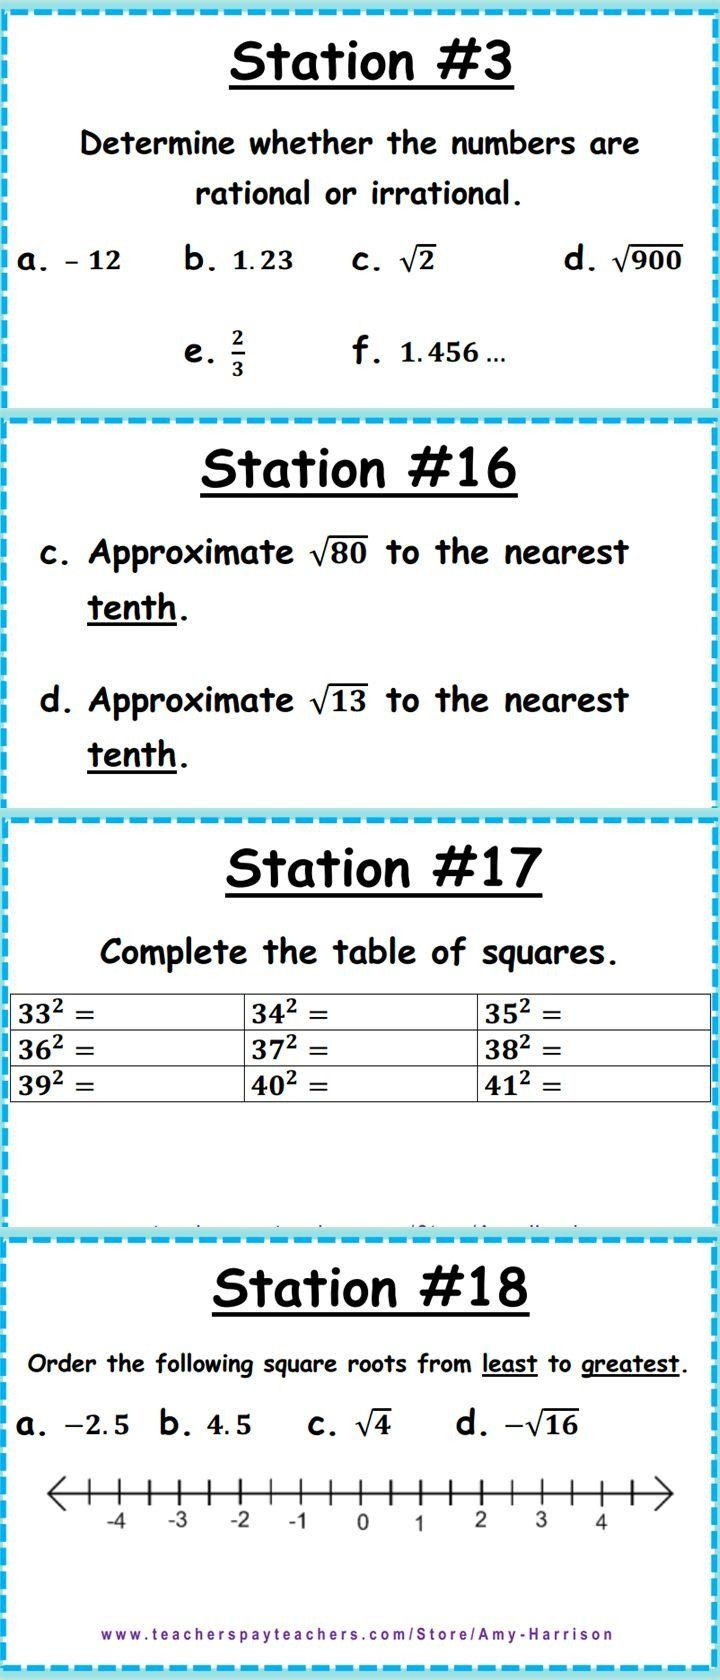 Fresh Ideas - Estimating Irrational Numbers Worksheet Irrational and